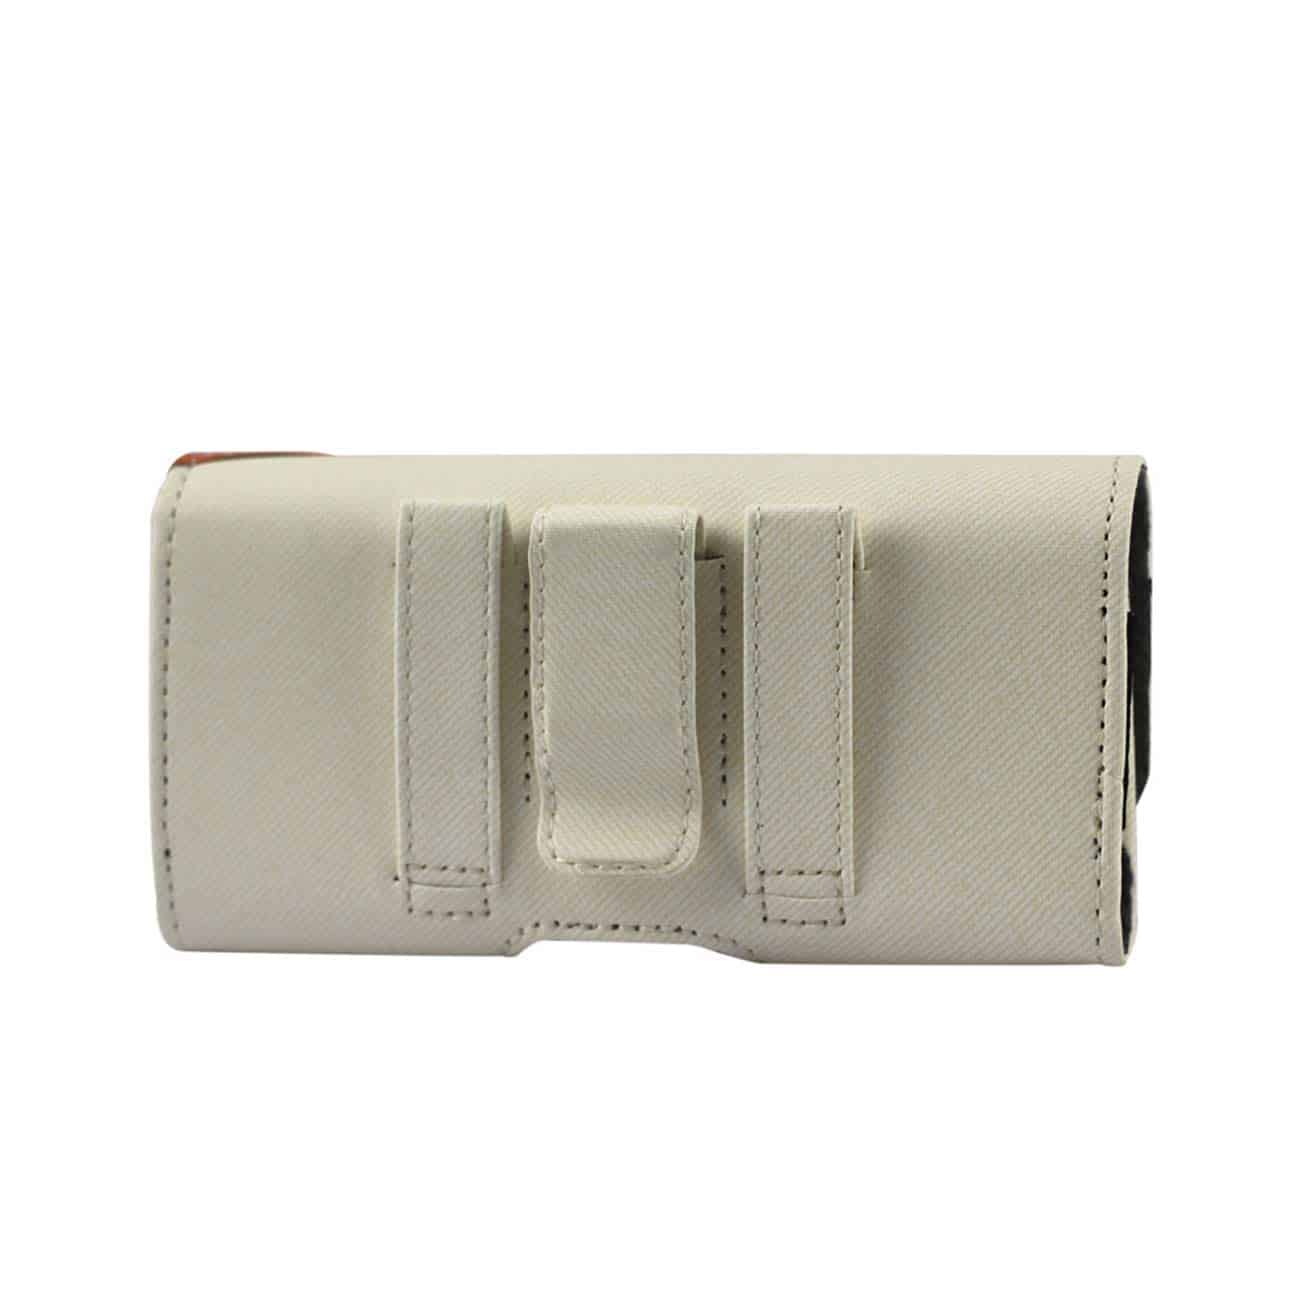 HORIZONTAL POUCH FOR SAMSUNG GALAXY S III I9300 TWILL PATTER WHITE